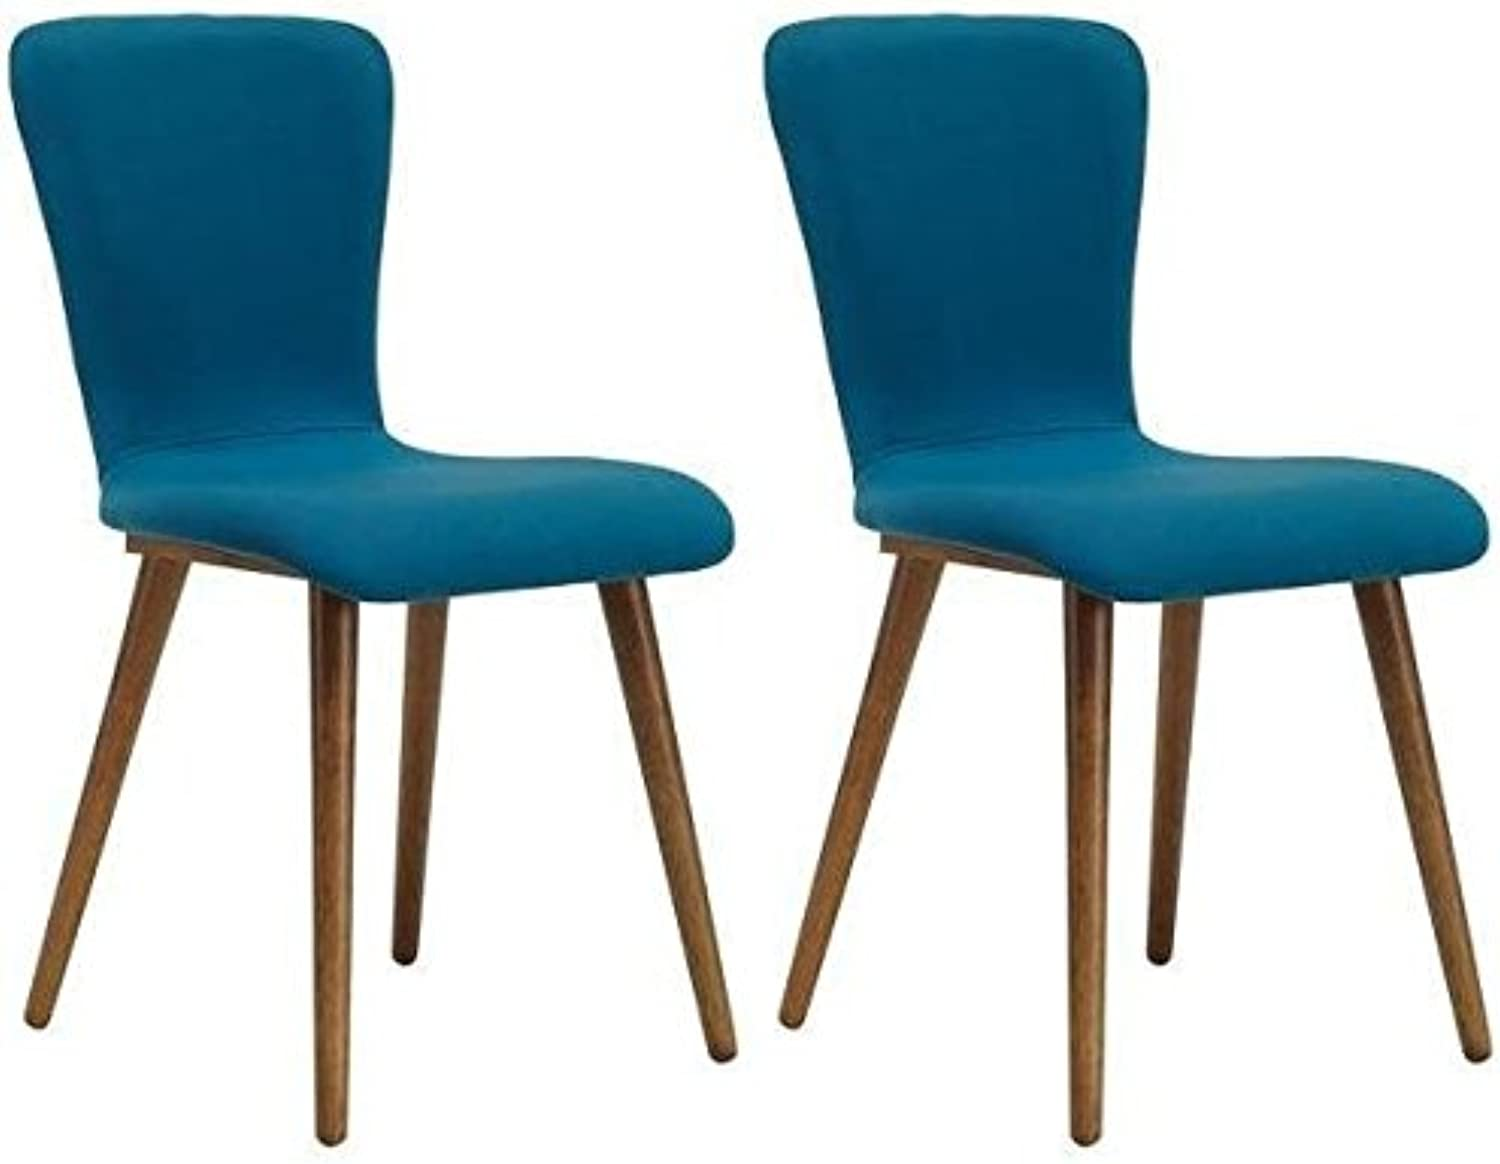 Set of 2 - Valley Dining Chair - Cocoa + Teal